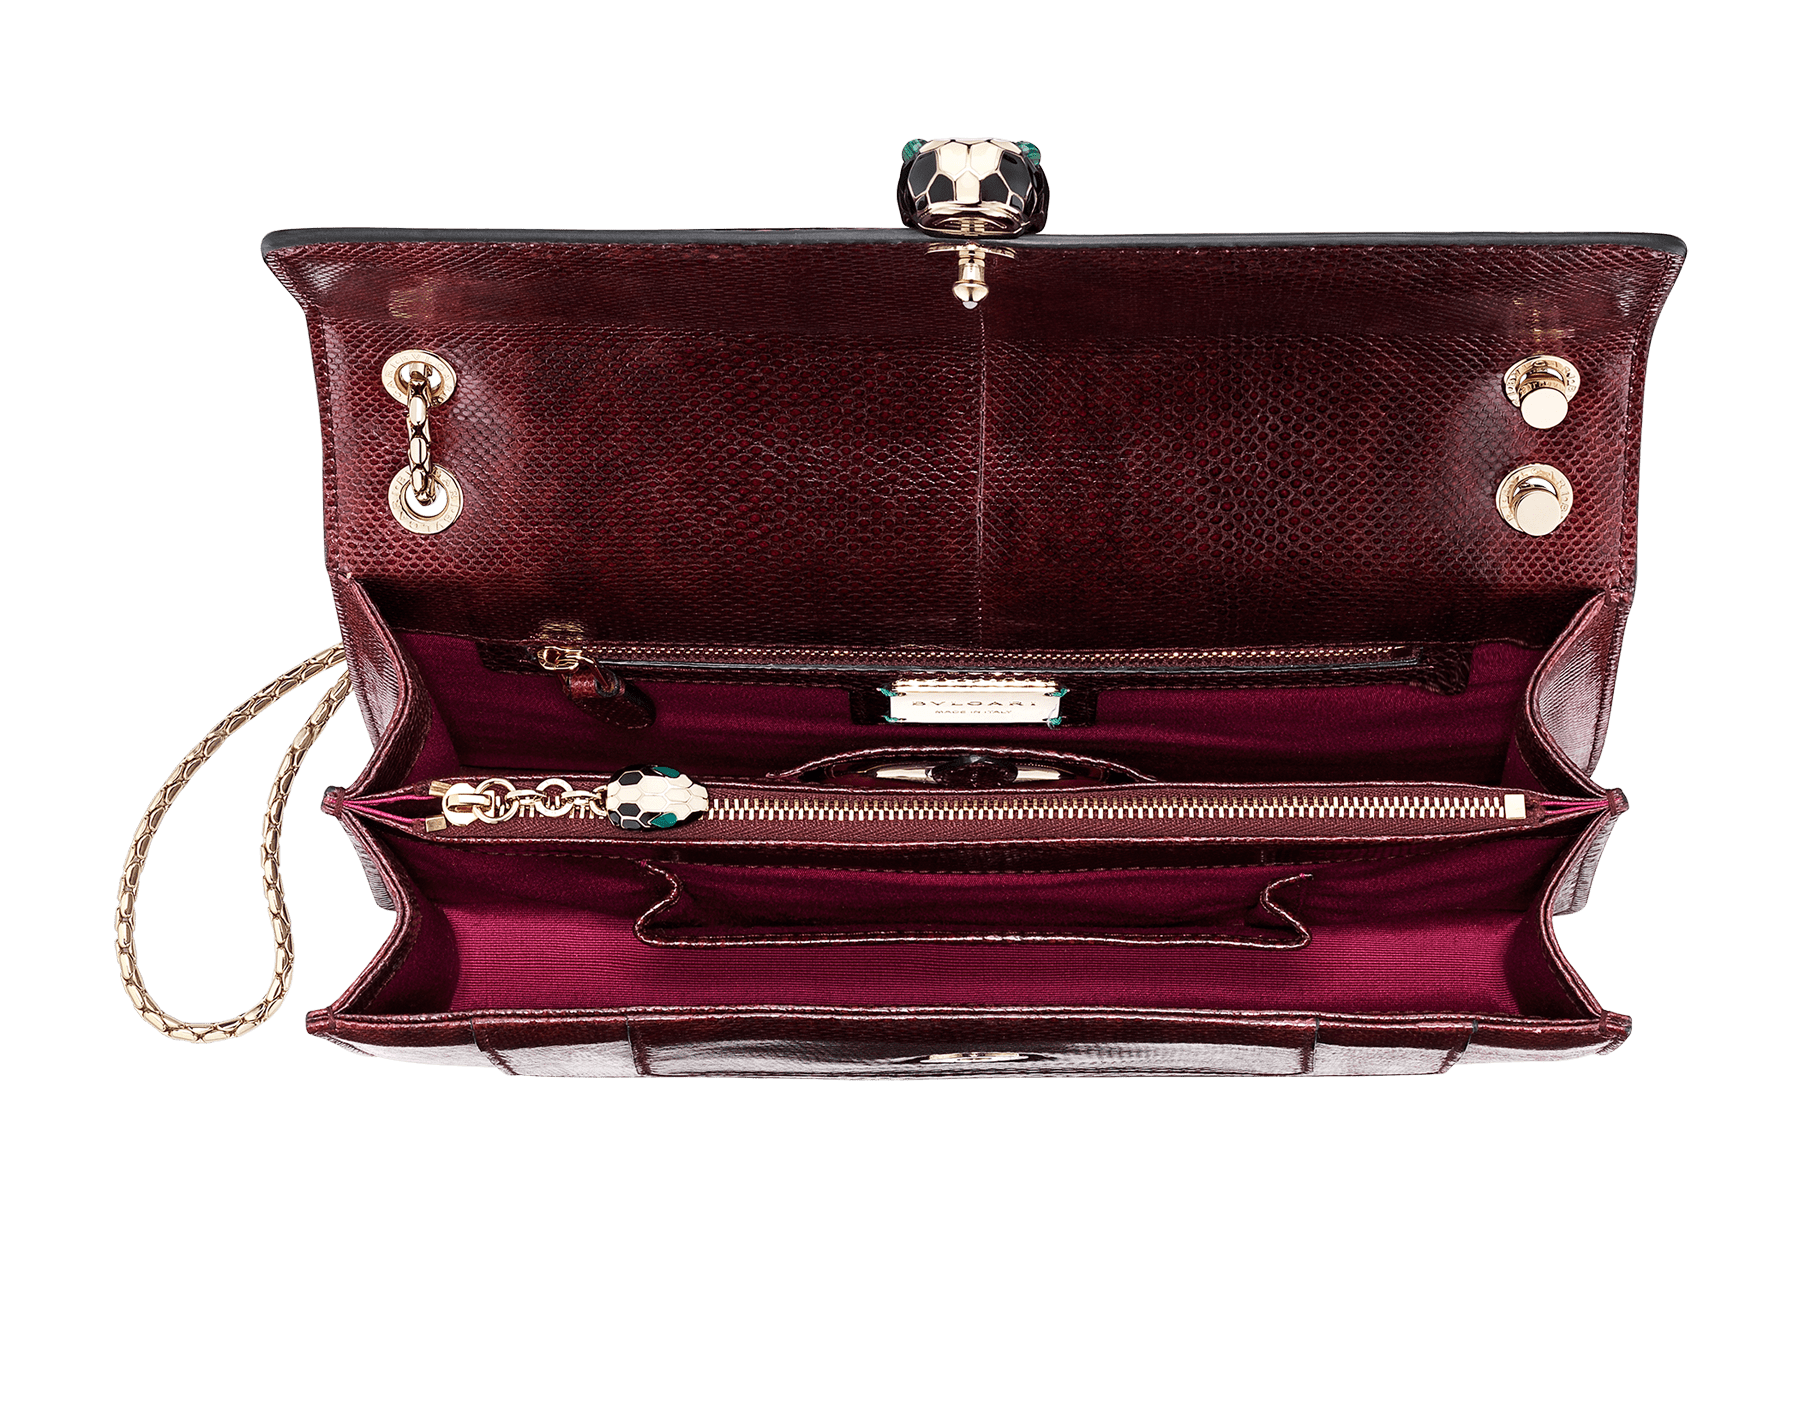 Flap cover bag Serpenti Forever in roman garnet shiny karung skin. Brass light gold plated tempting snake head closure in shiny black and white enamel, with eyes in green malachite. 286199 image 4